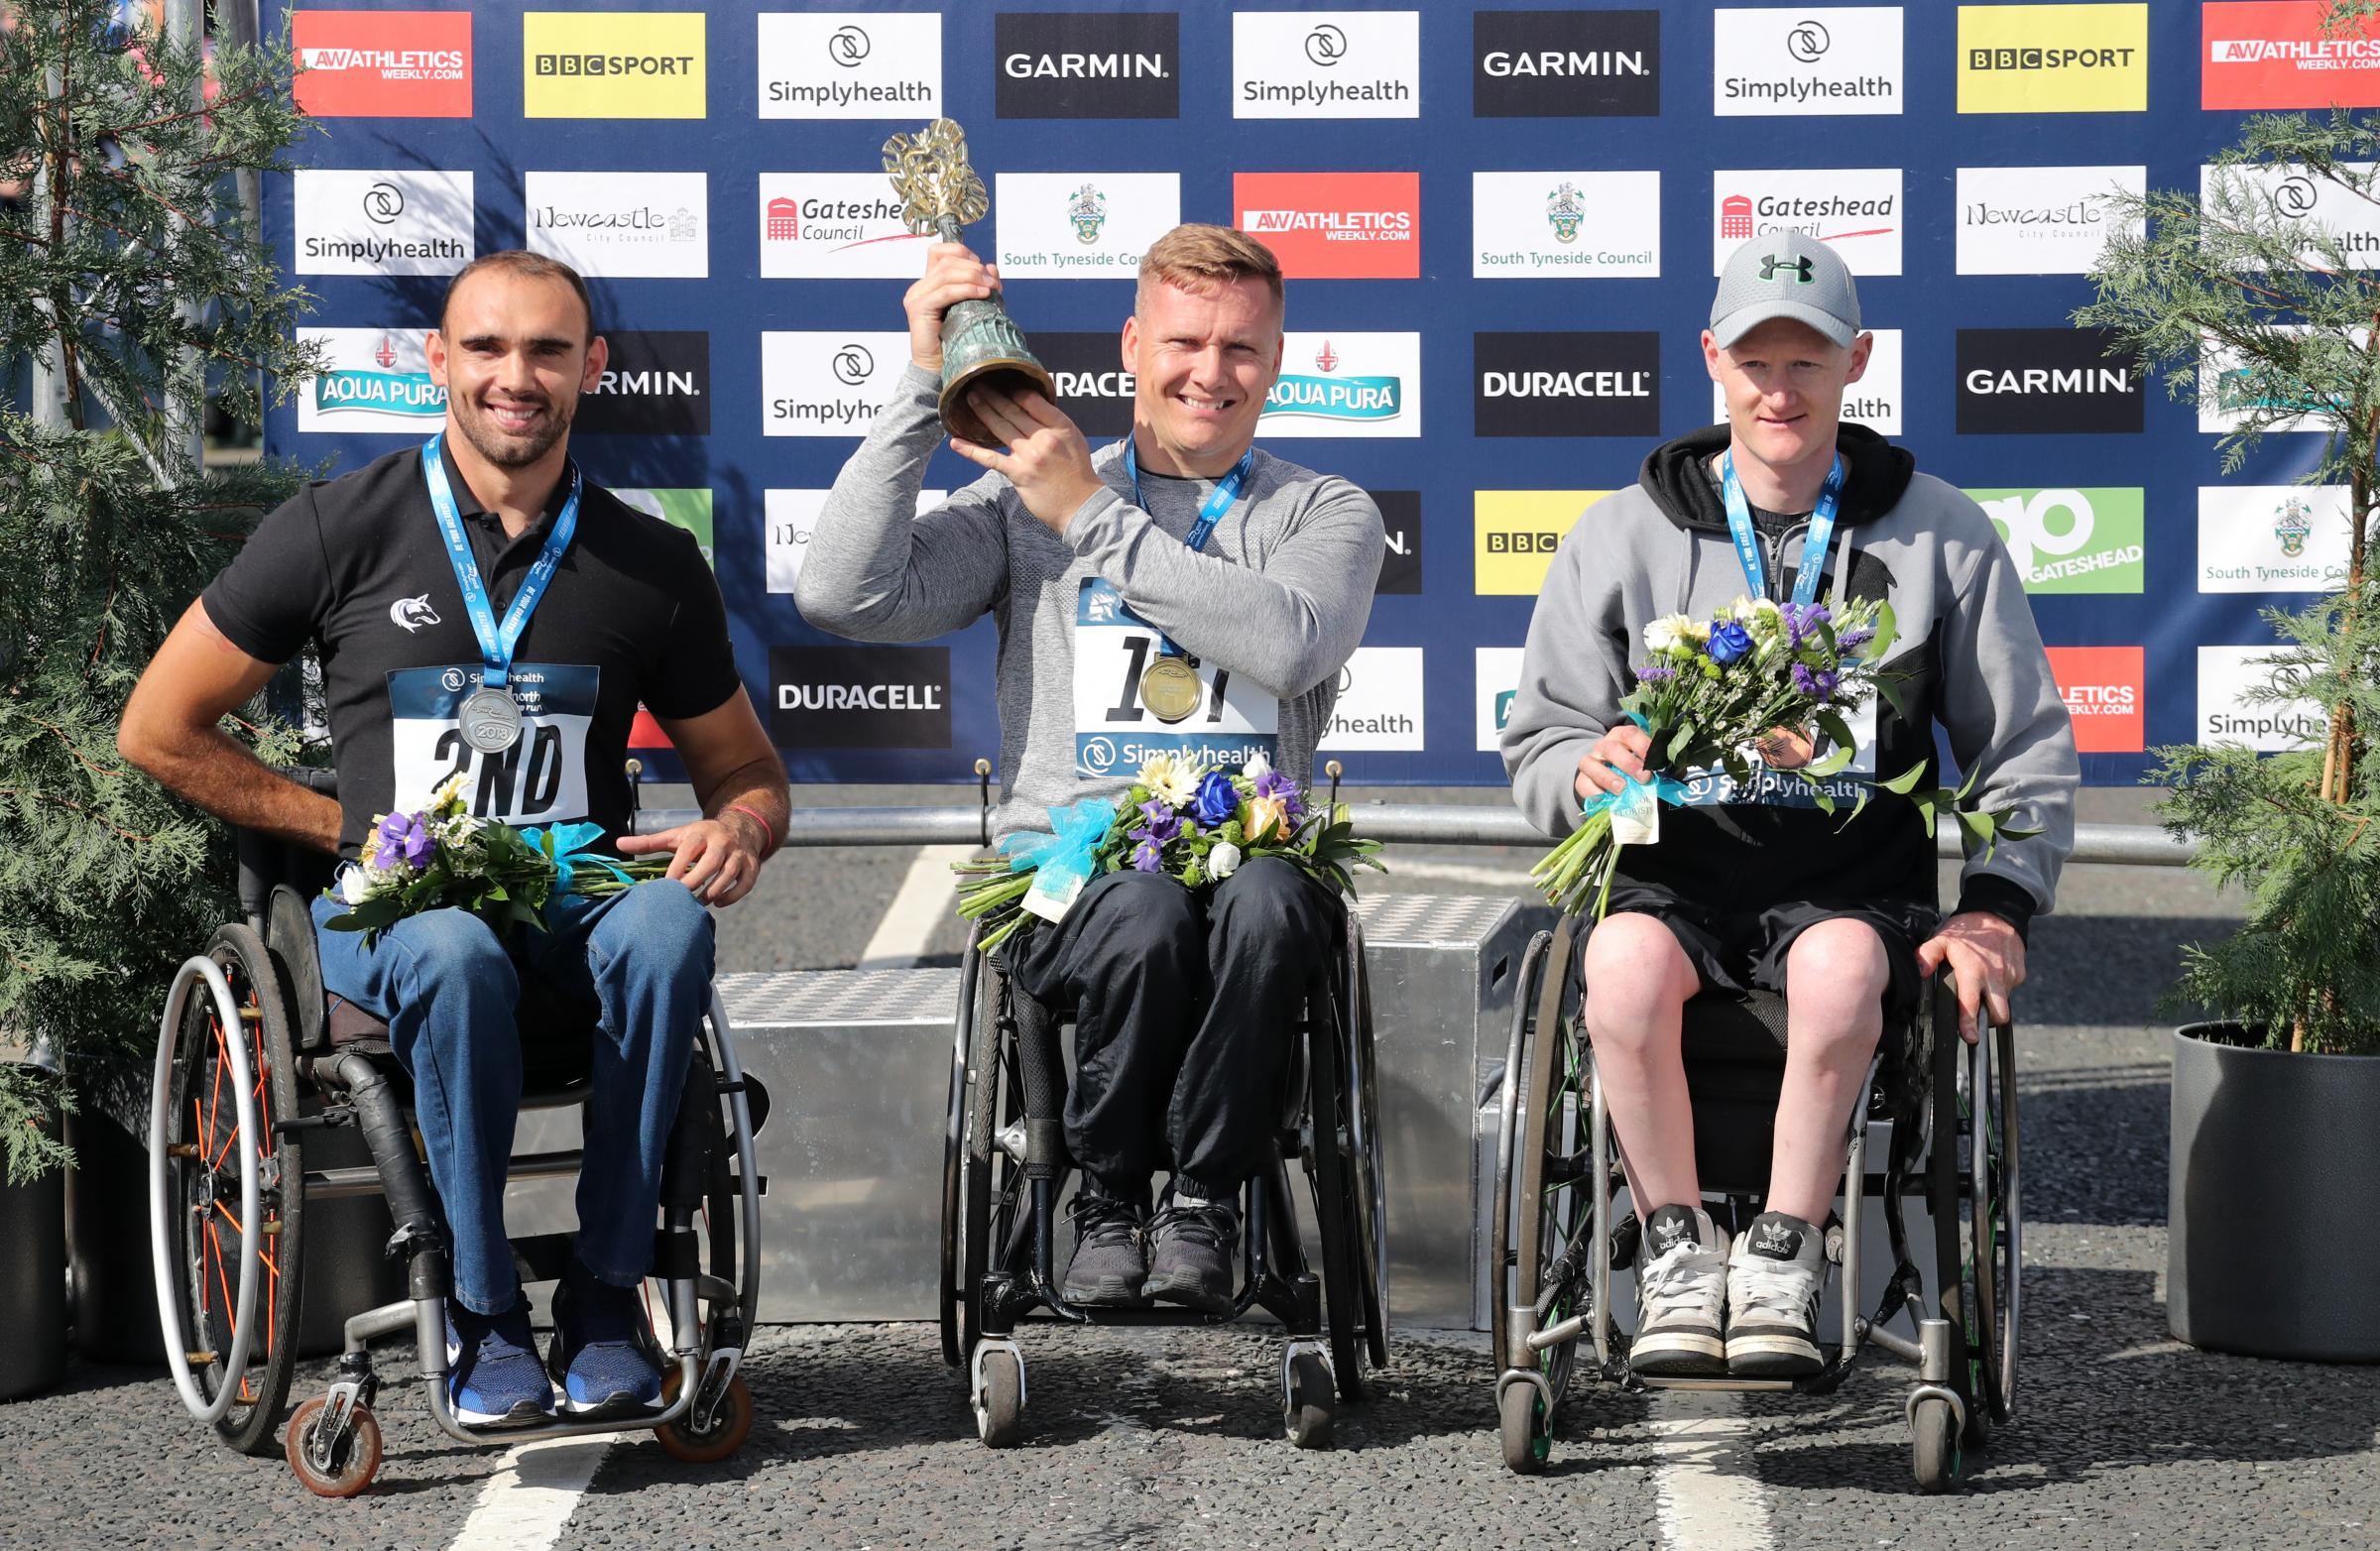 David Weir (centre) celebrates winning the Wheelchair Elite race during the 2018 Simply Health Great North Run. Photo: Richard Sellers / PA